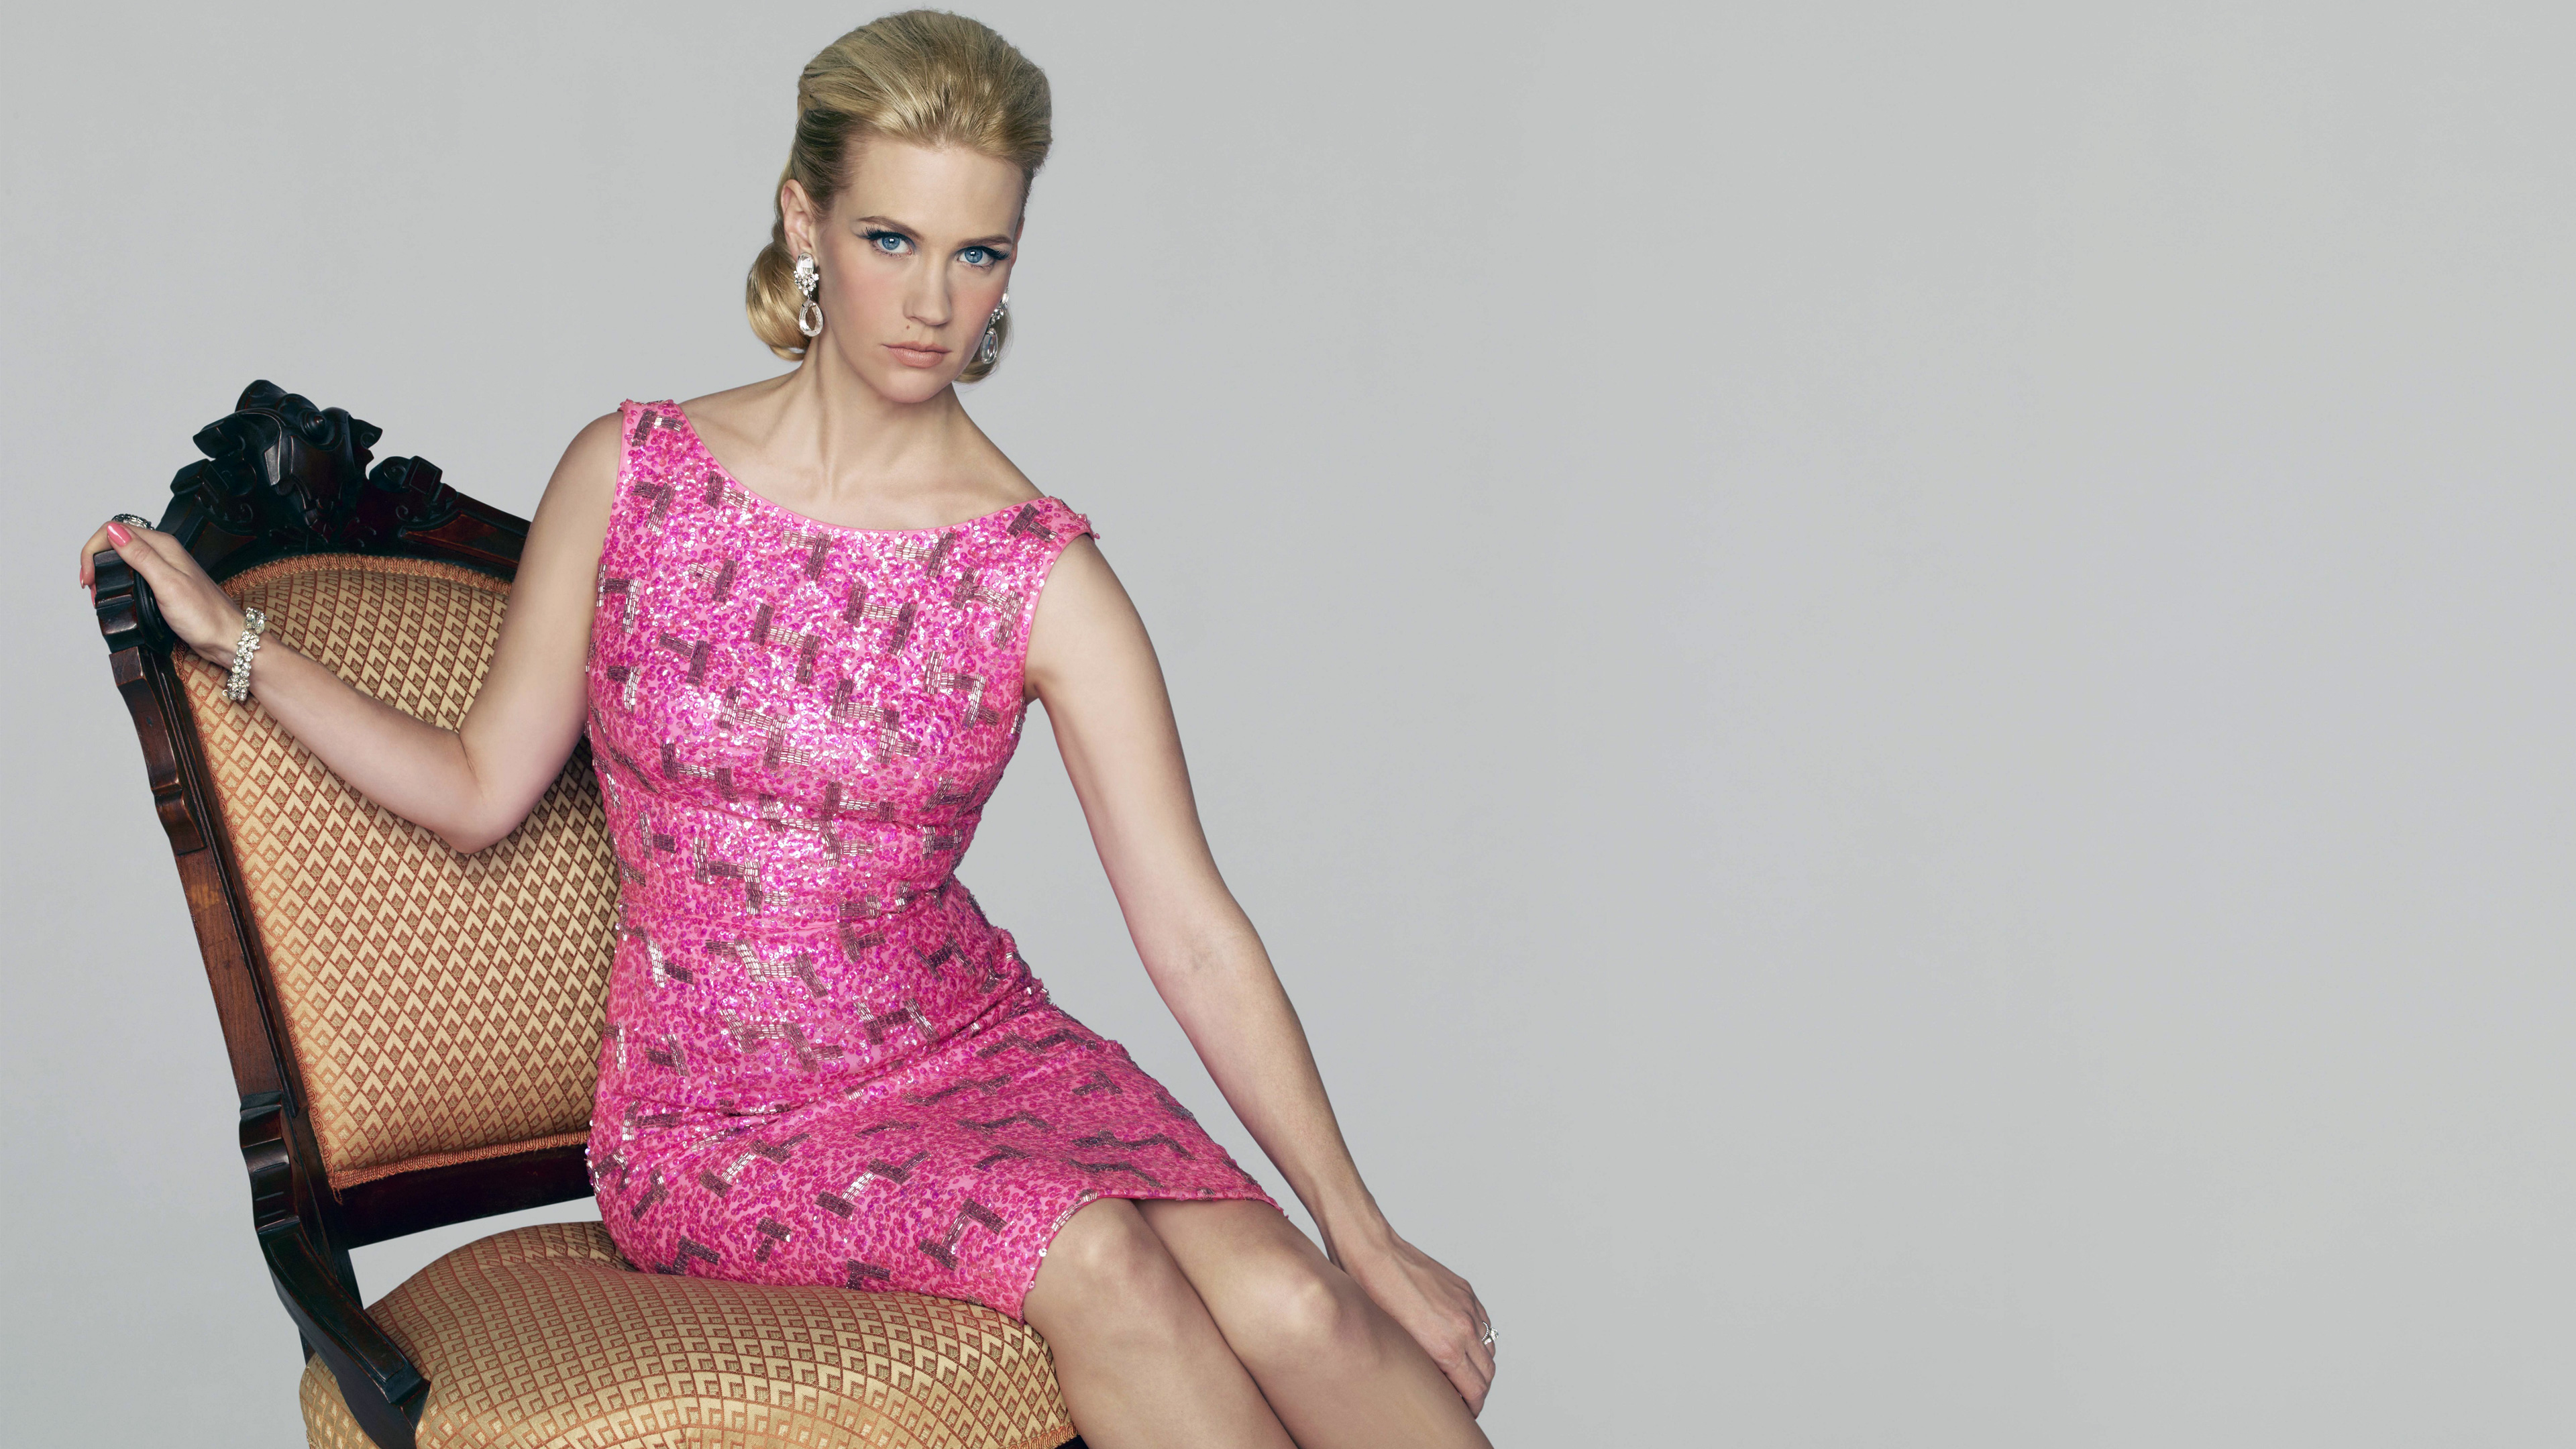 Mad Men Actress January Jones wallpaper